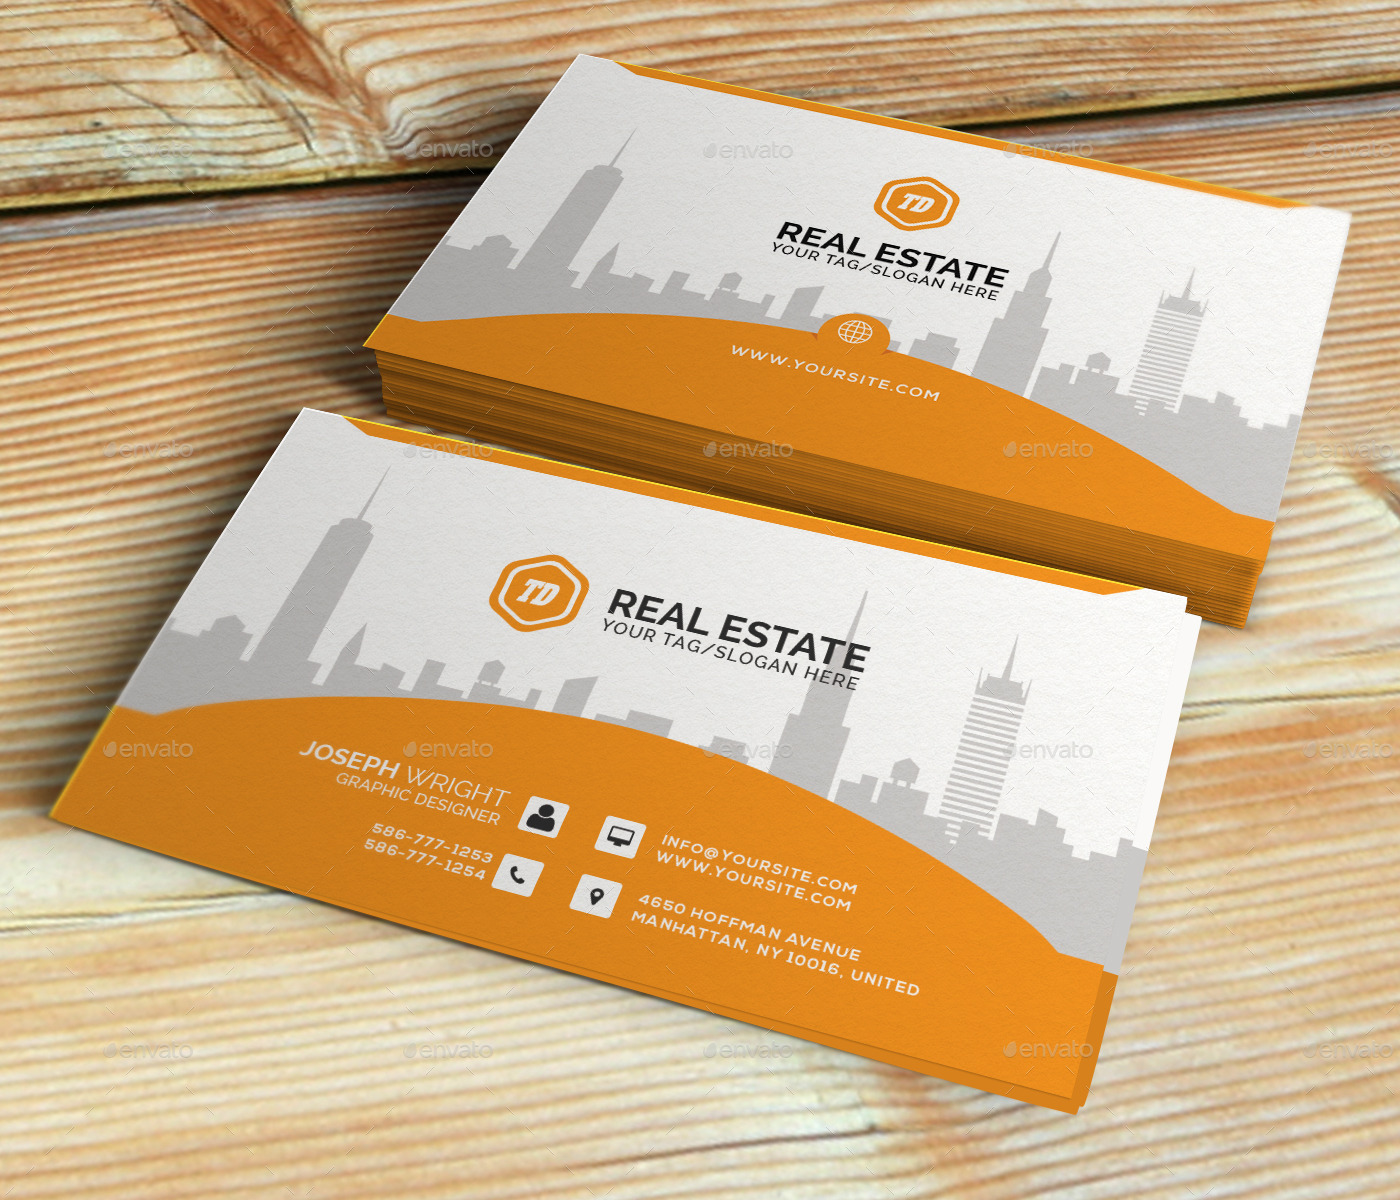 Real Estate - Business Card Template by themedesk | GraphicRiver